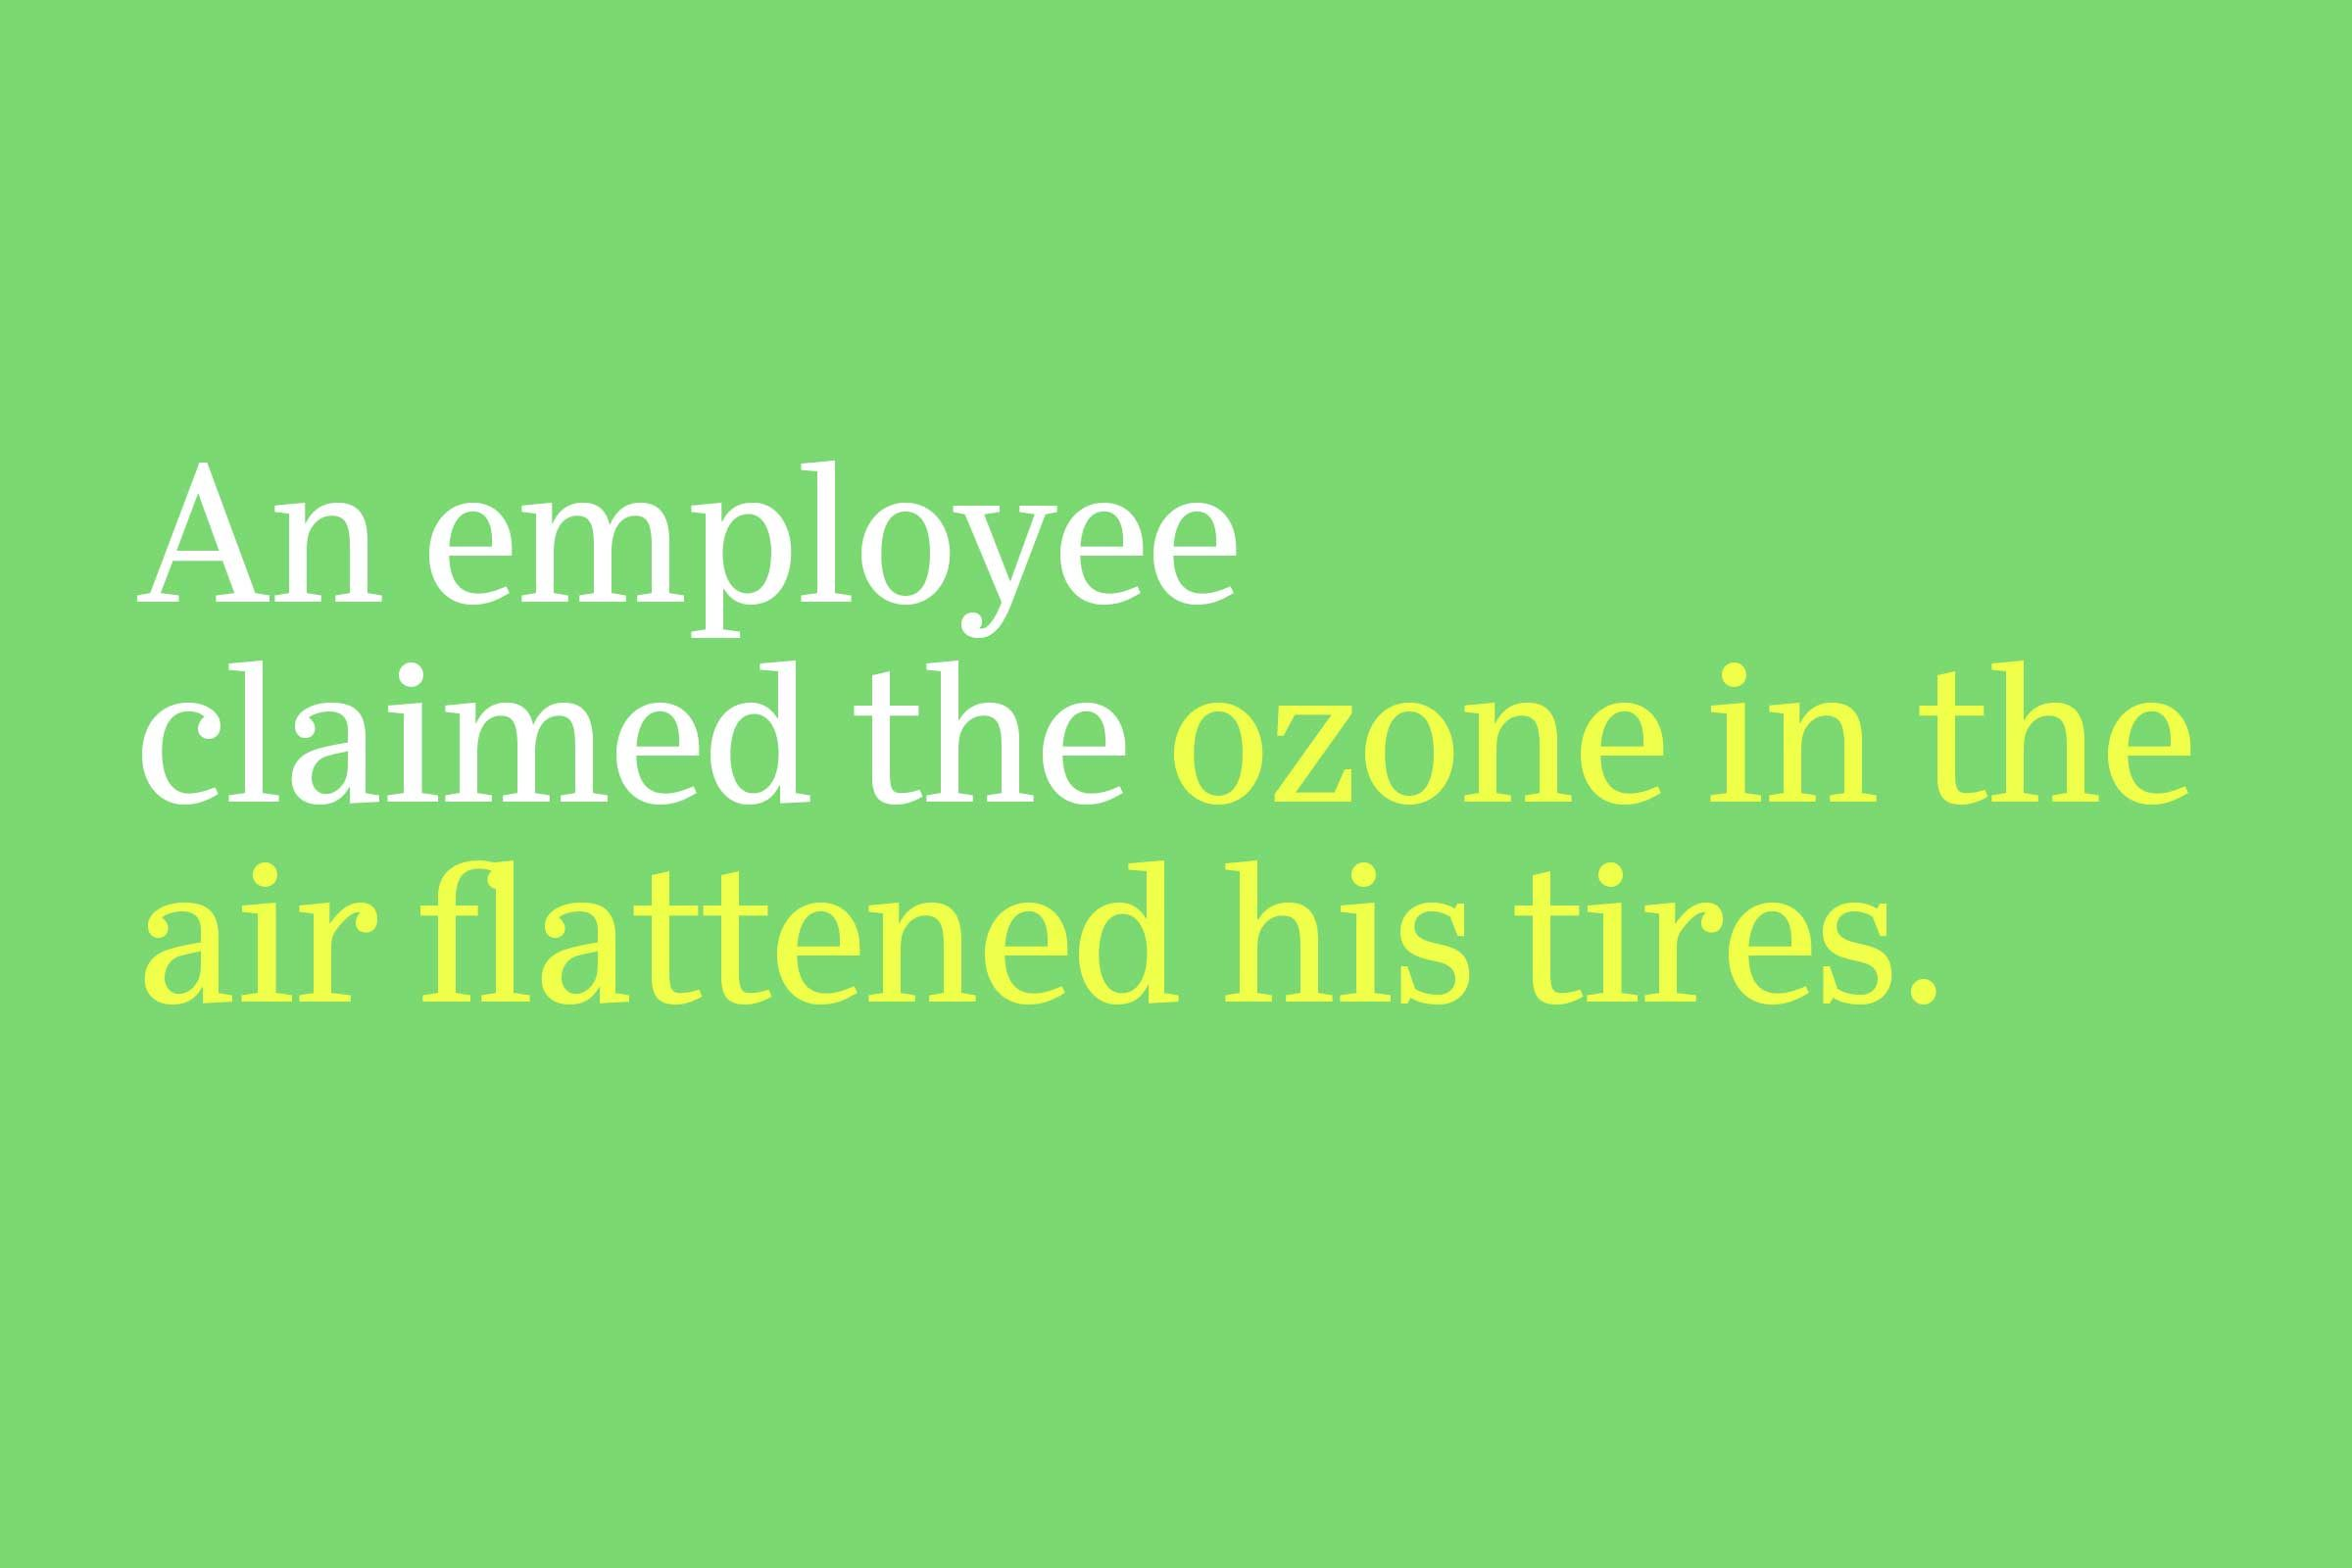 ozone in the air flattened his tires